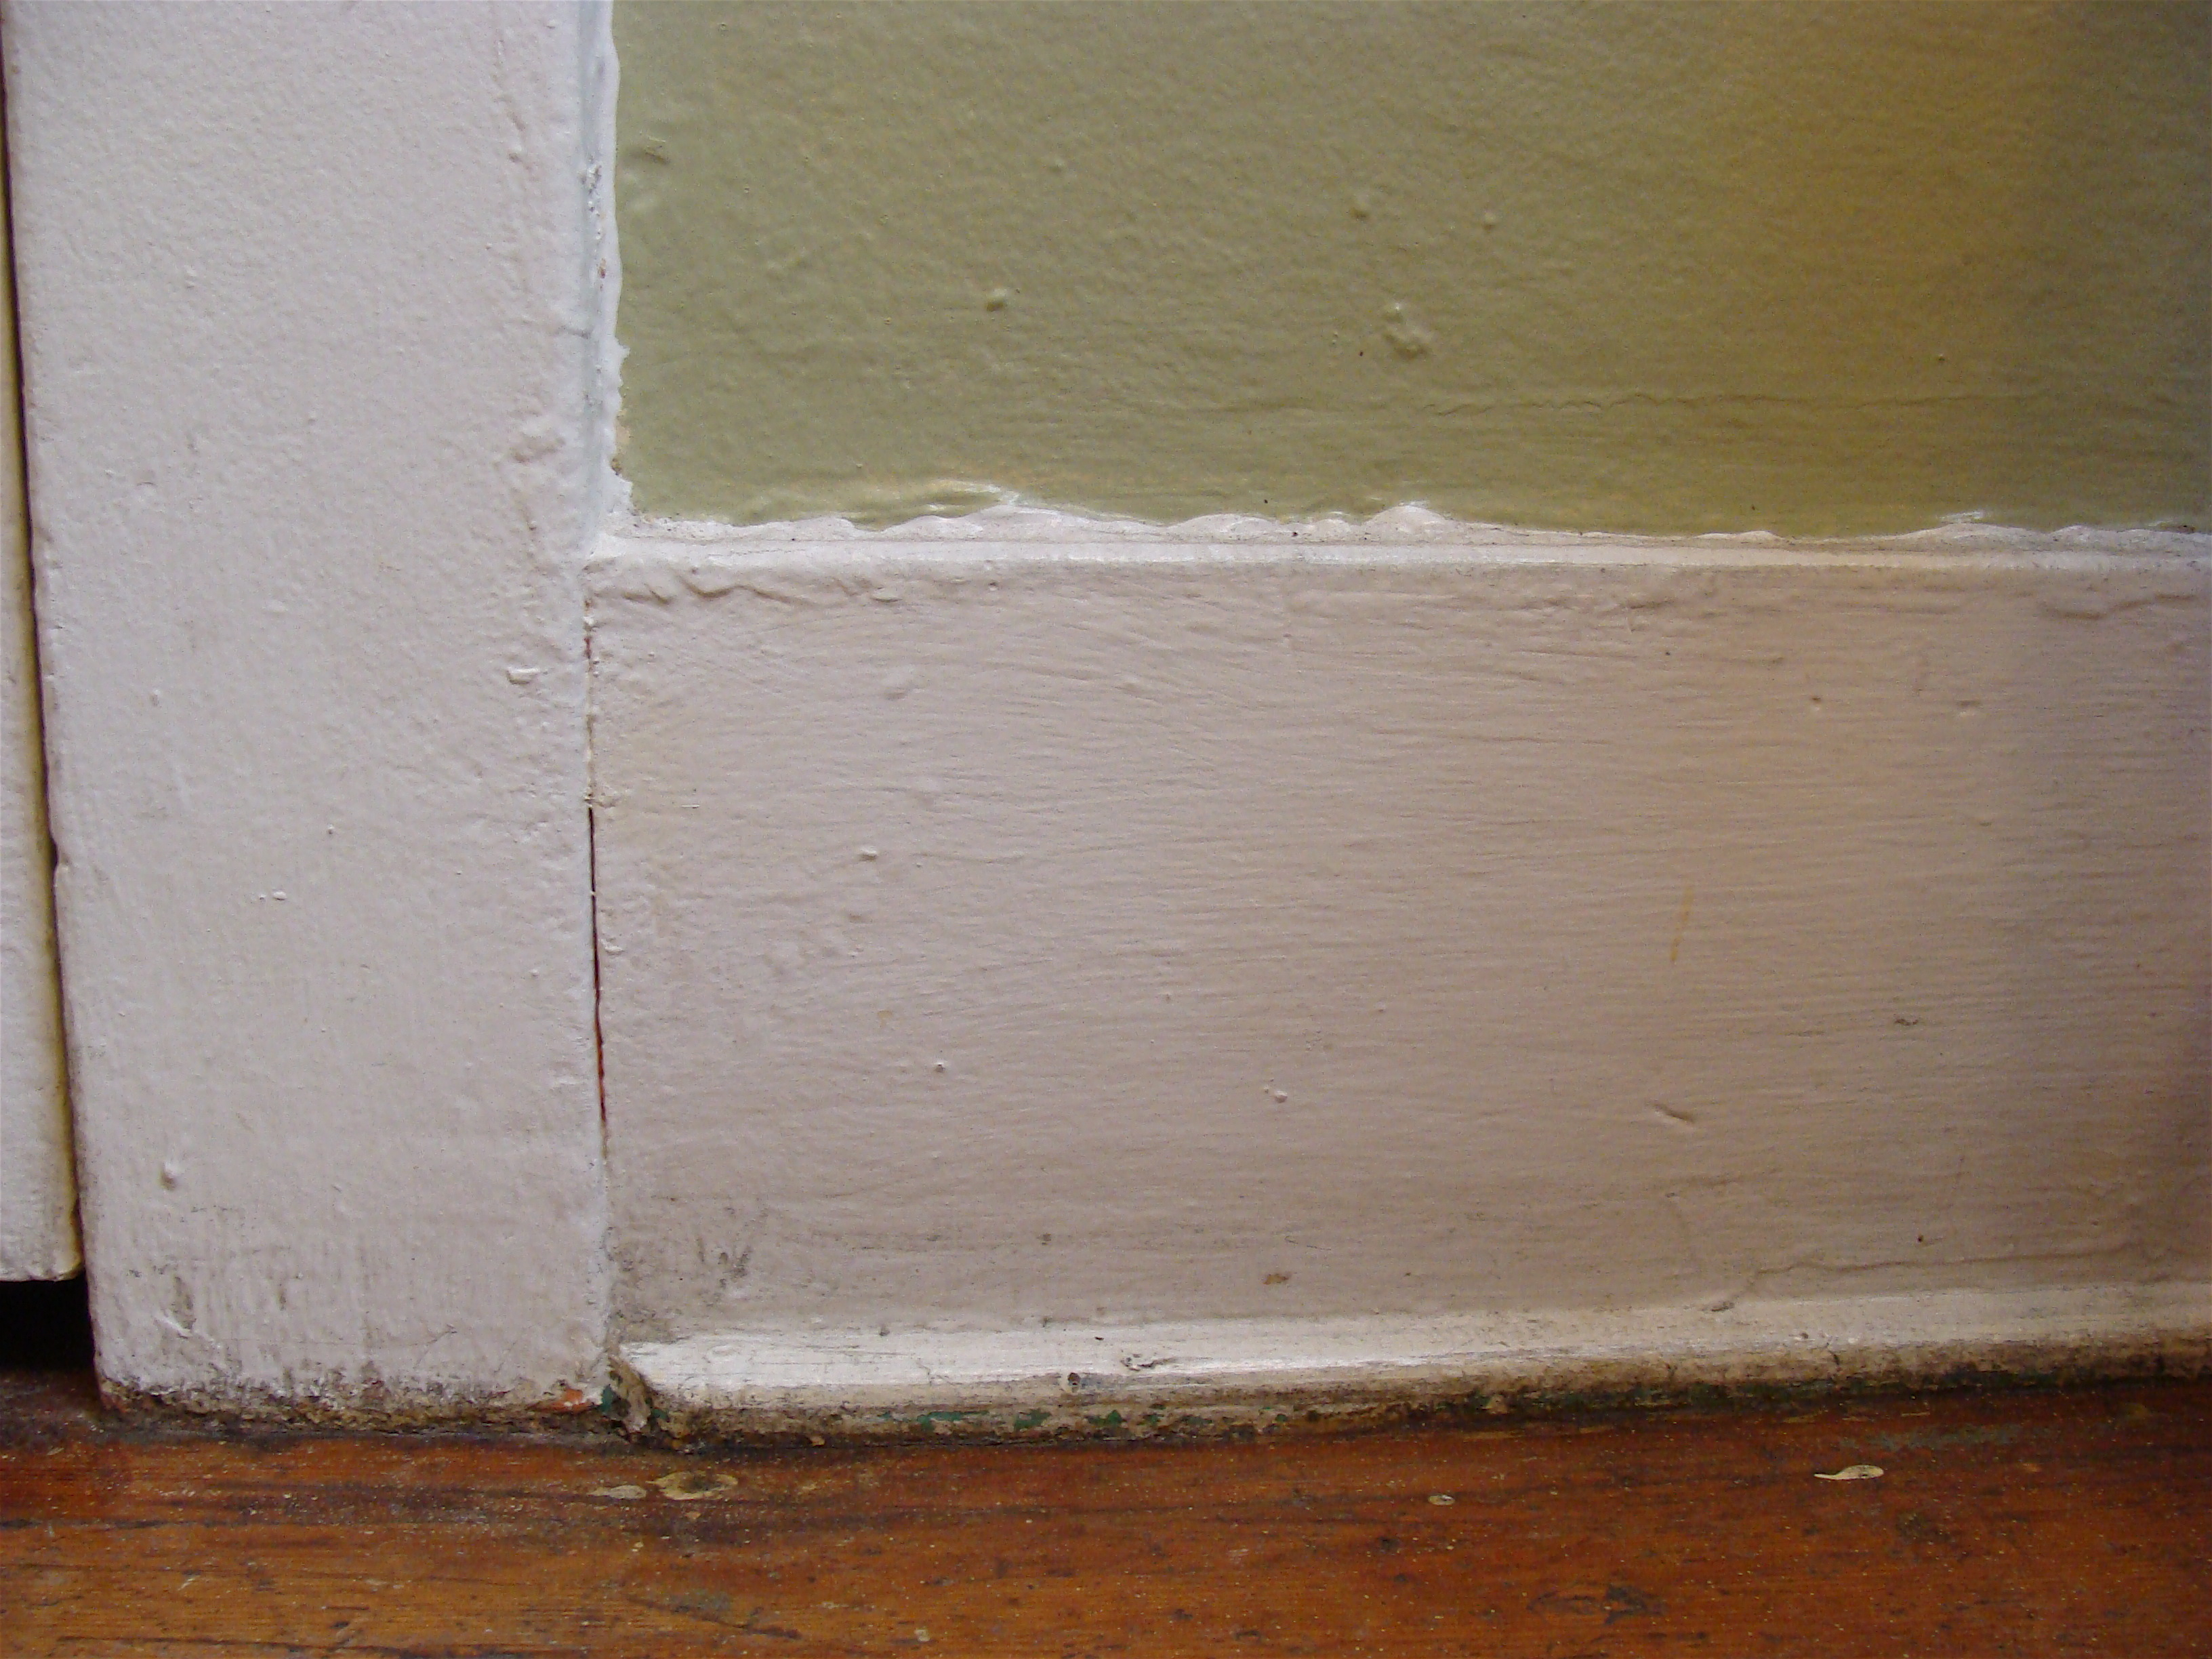 Craftsman style baseboard images for Baseboard style